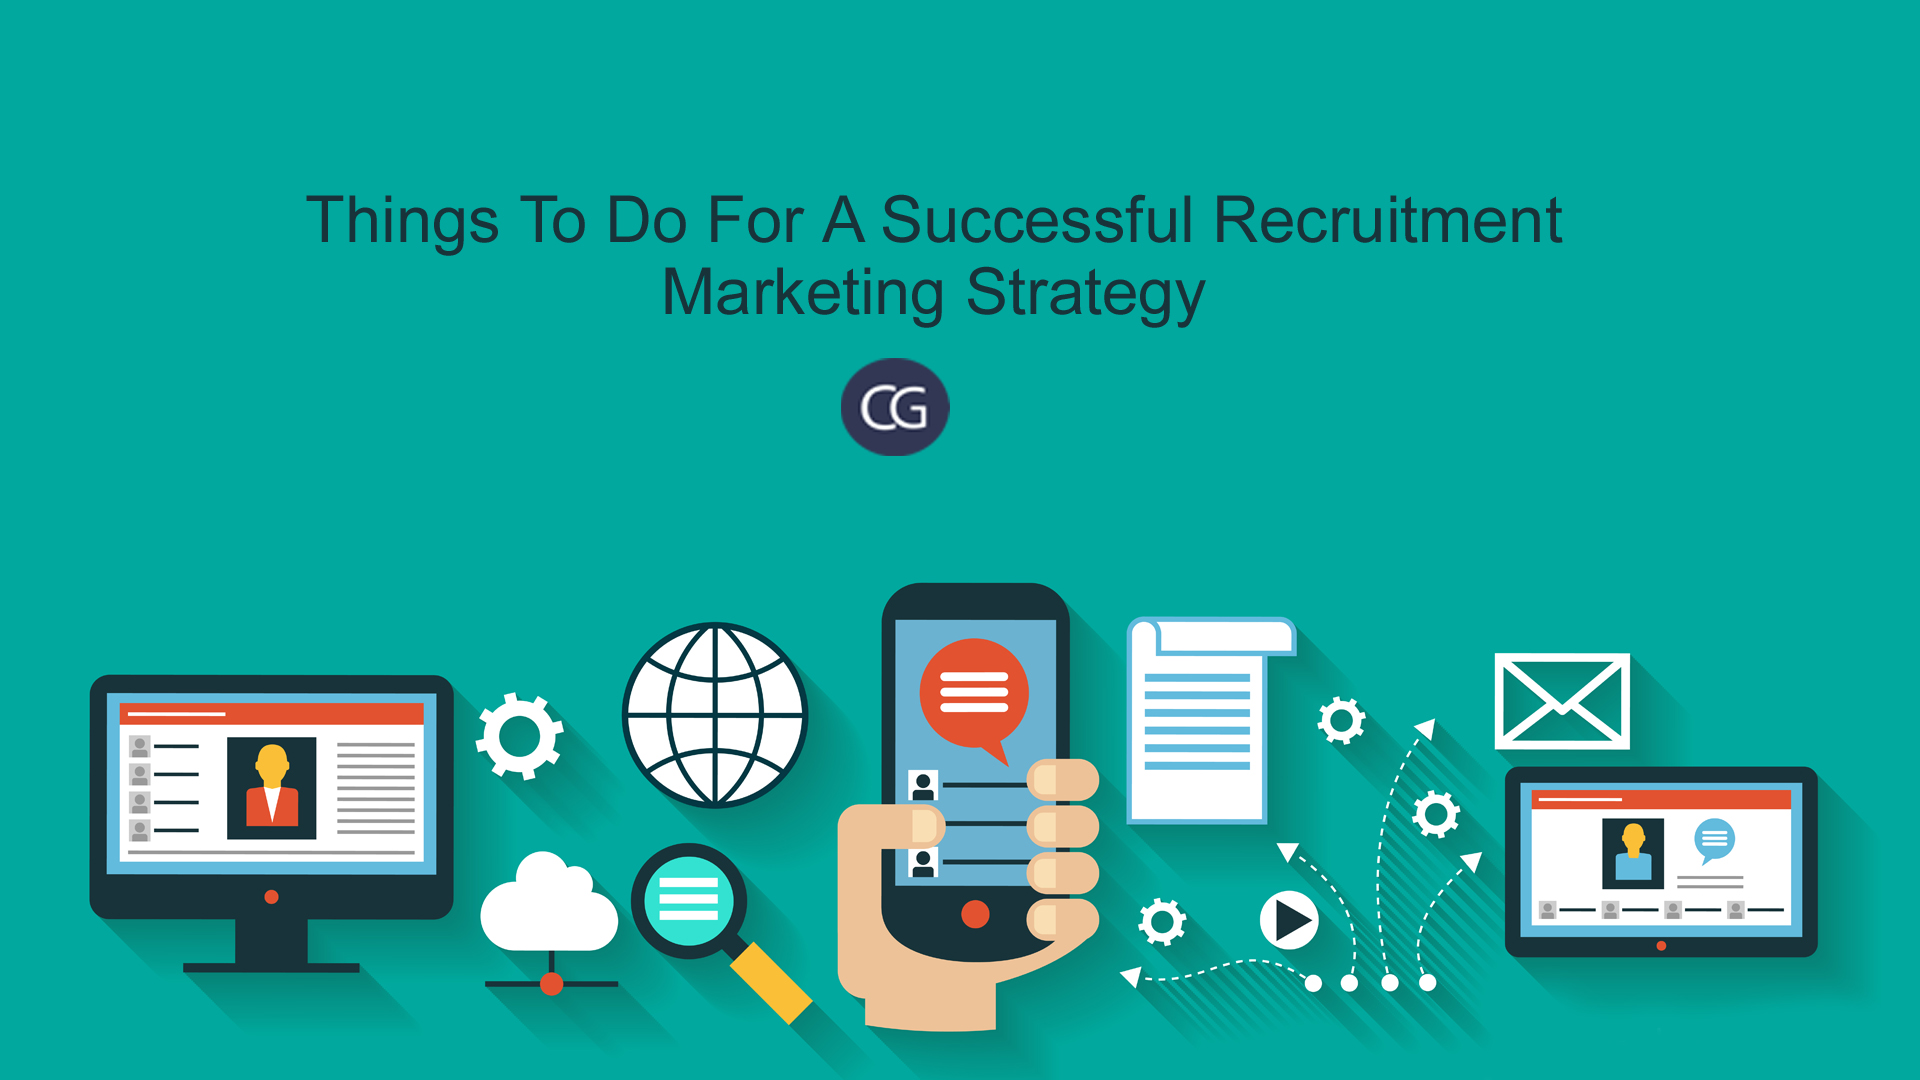 Recruitment Marketing Strategy